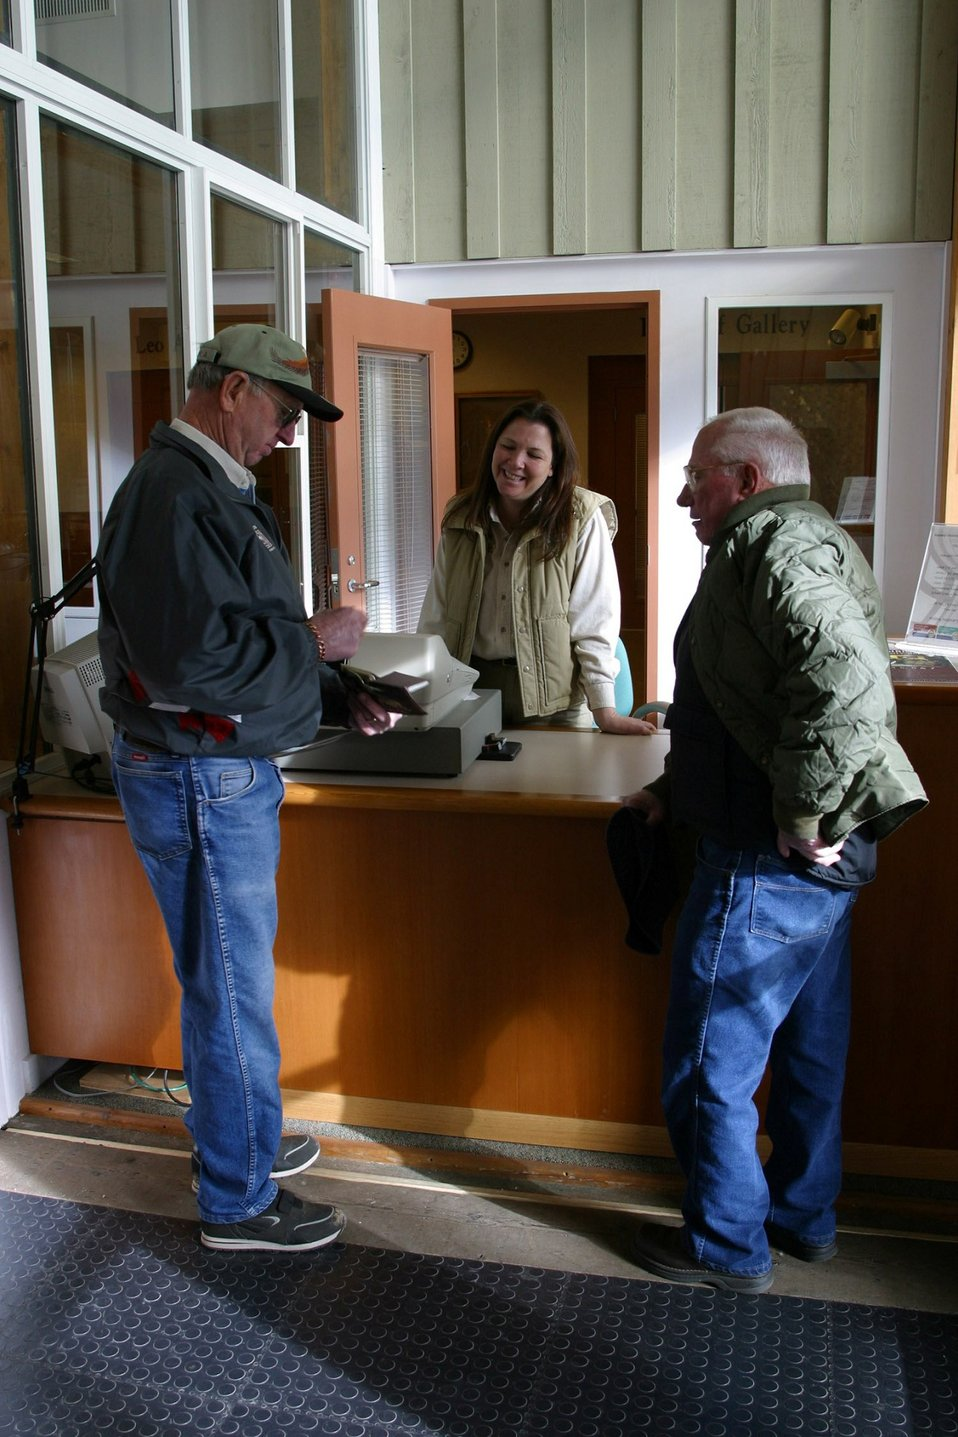 Visitors are greeted by BLM staff and Volunteers.